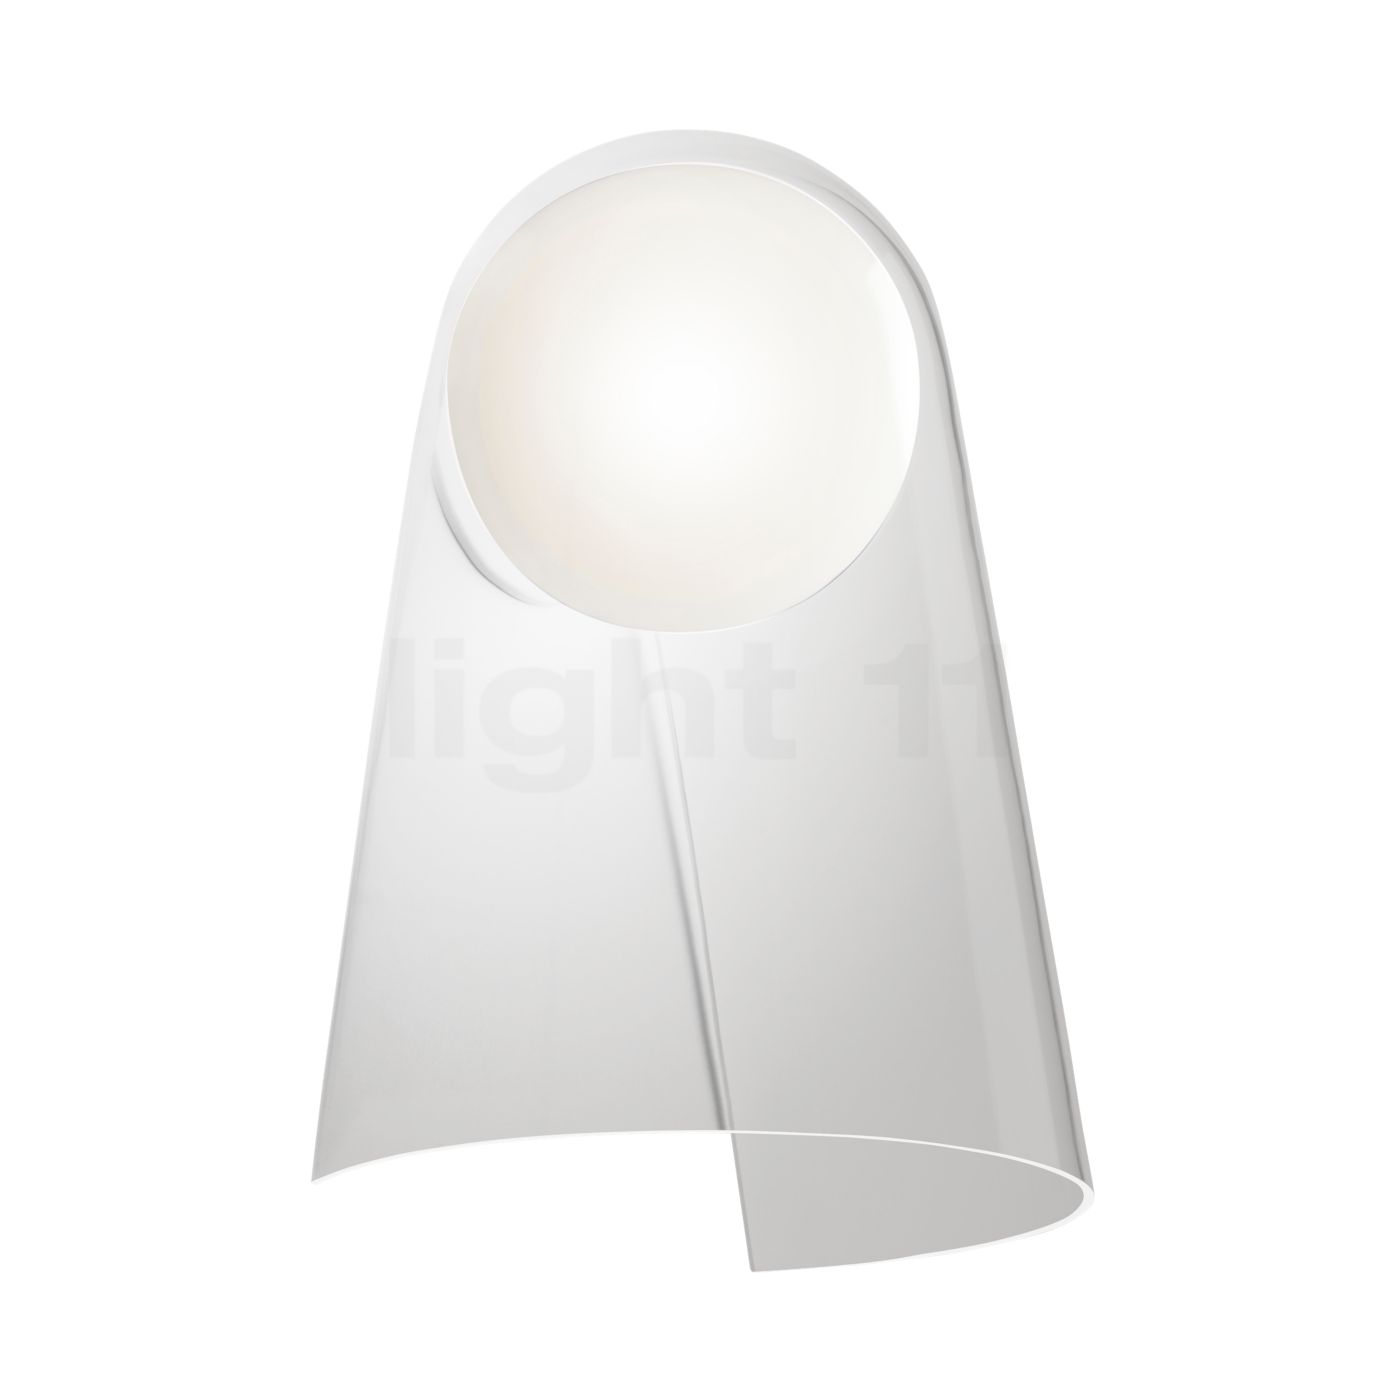 Foscarini Satellight Parete LED, transparent 285025-15